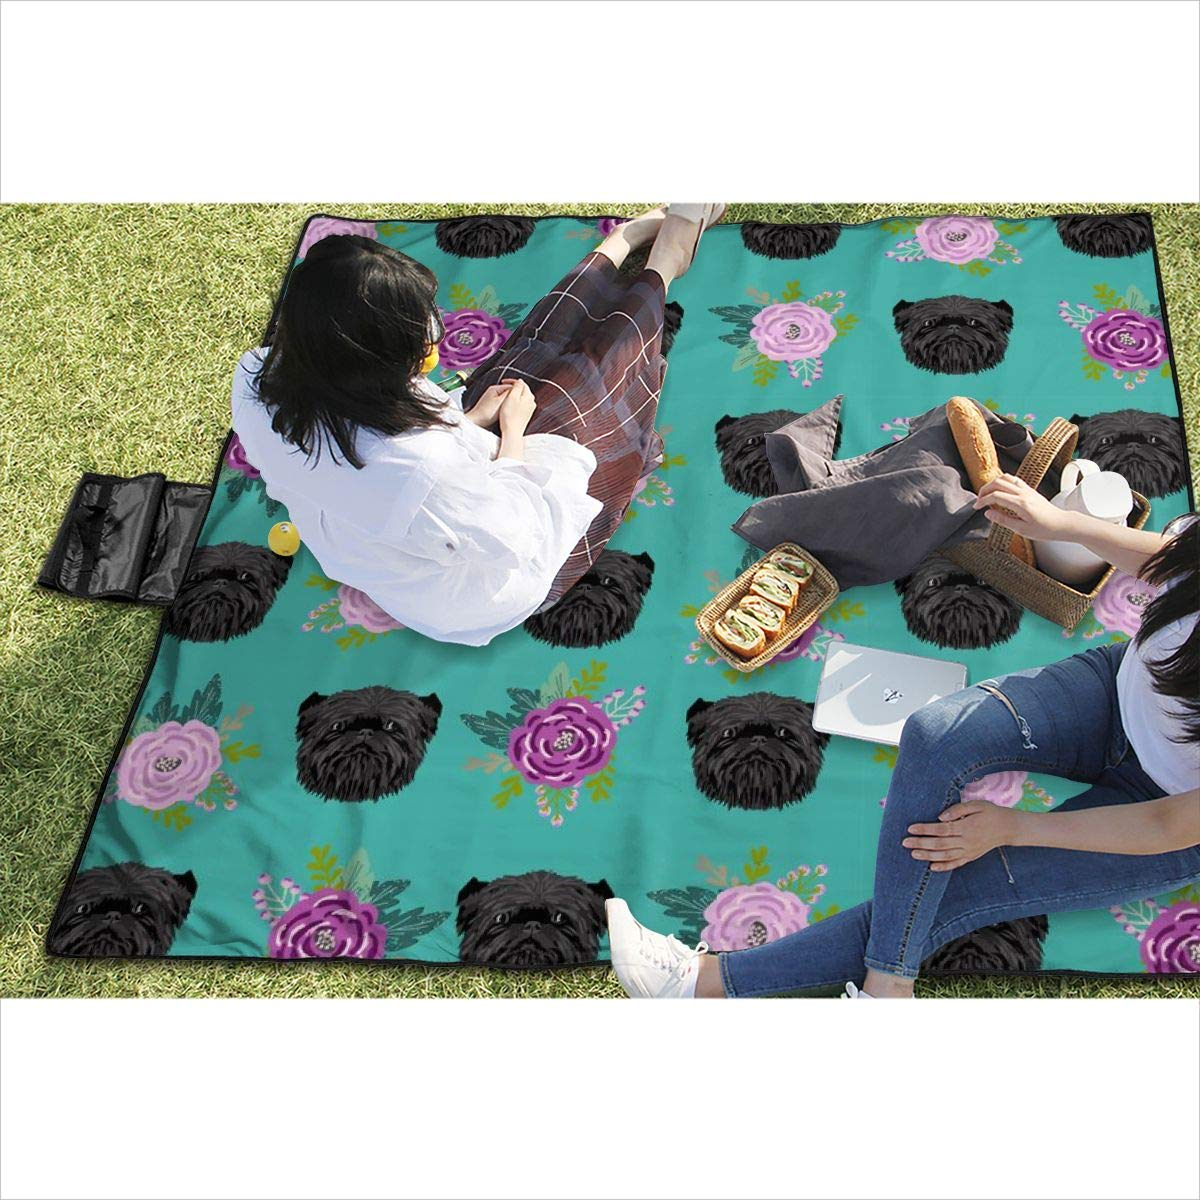 BigHappyShop Picnic Blanket Affenpinscher Florals Dog Dog Heads Purple Floral Waterproof Extra Large Outdoor Mat Camping Or Travel Easy Carry Compact Tote Bag 59″x57″